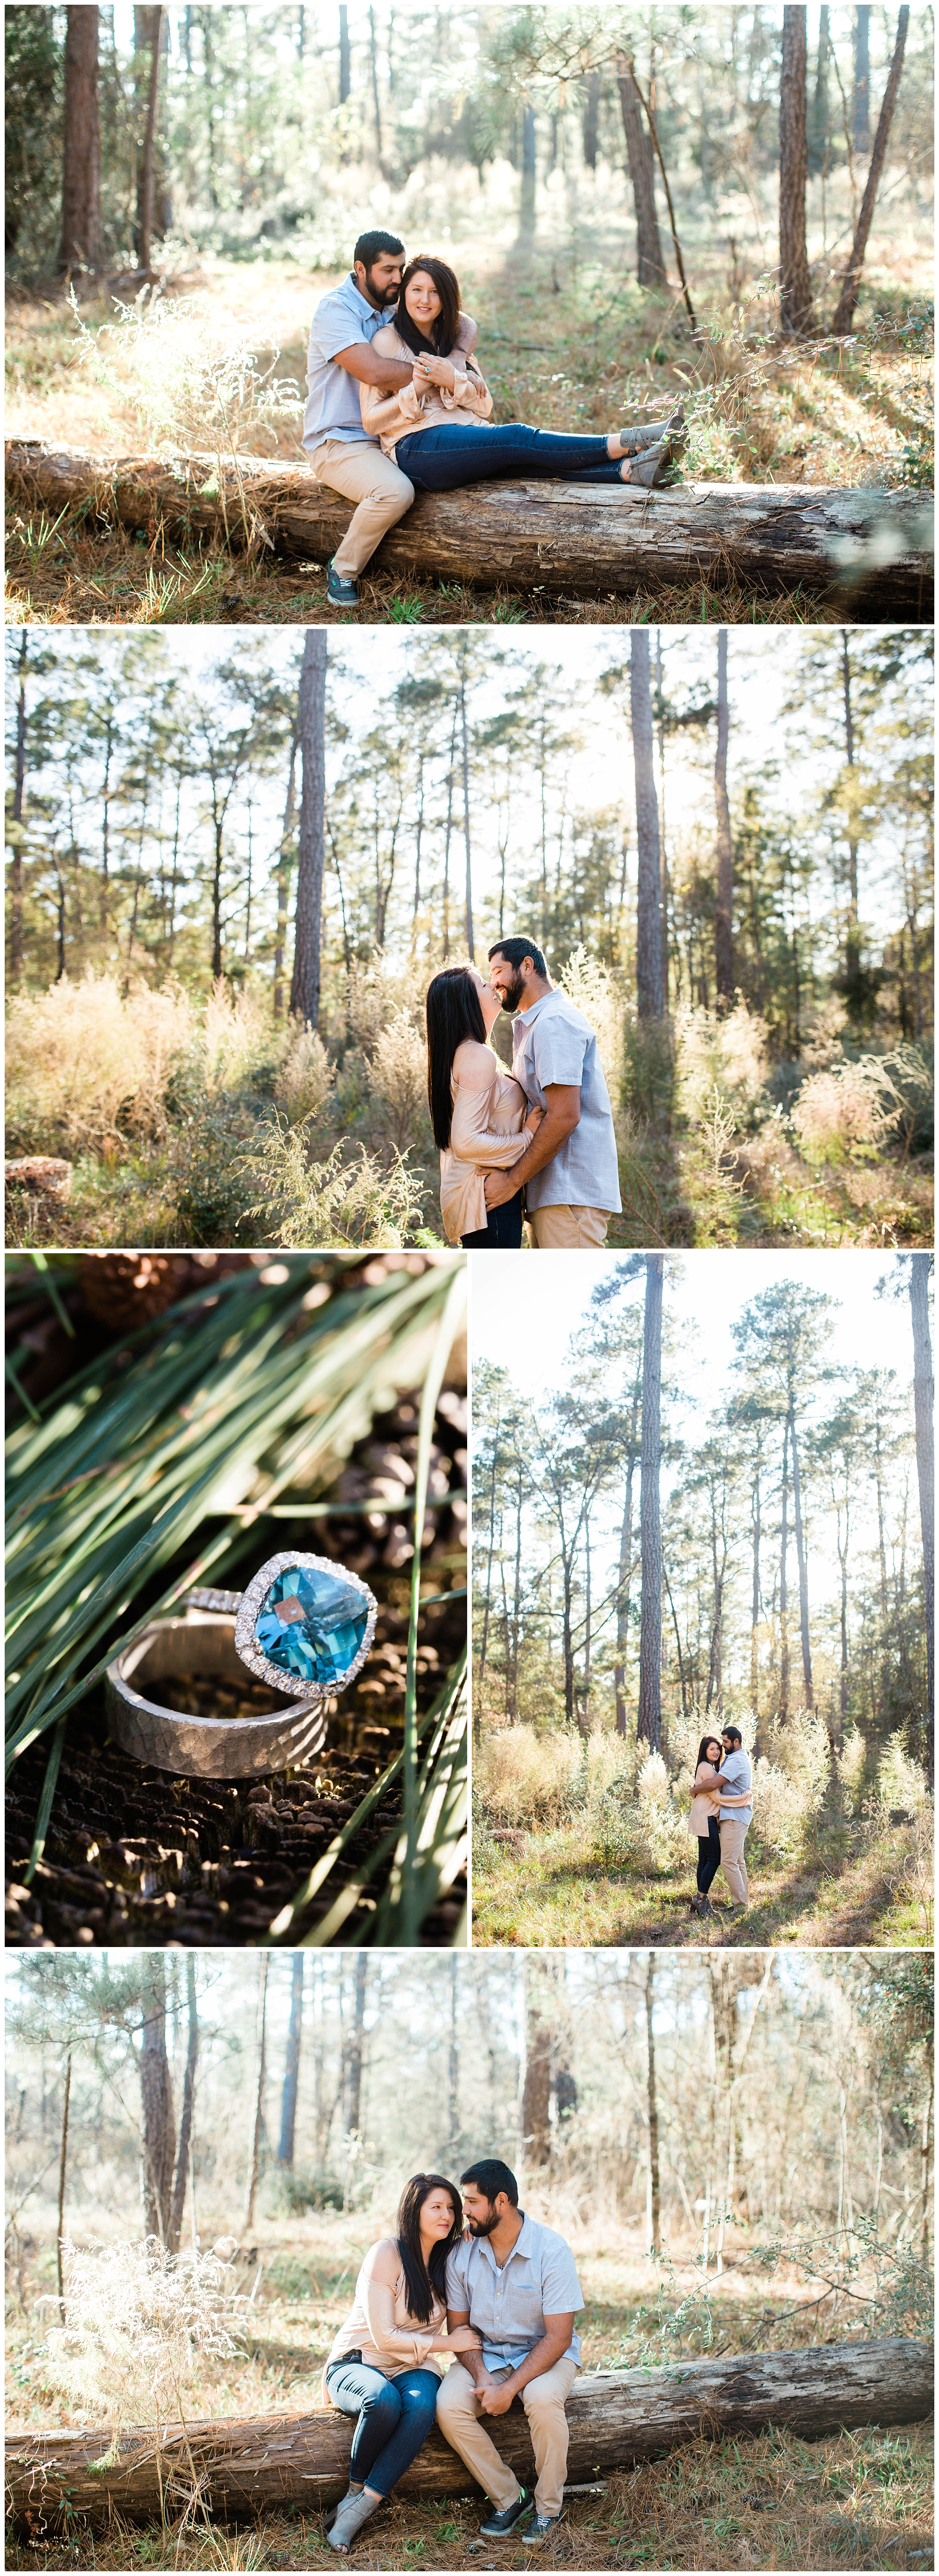 Sam_Houston_National_Forest_Engagement_Session_Kristina_Ross_Photography_0004.jpg